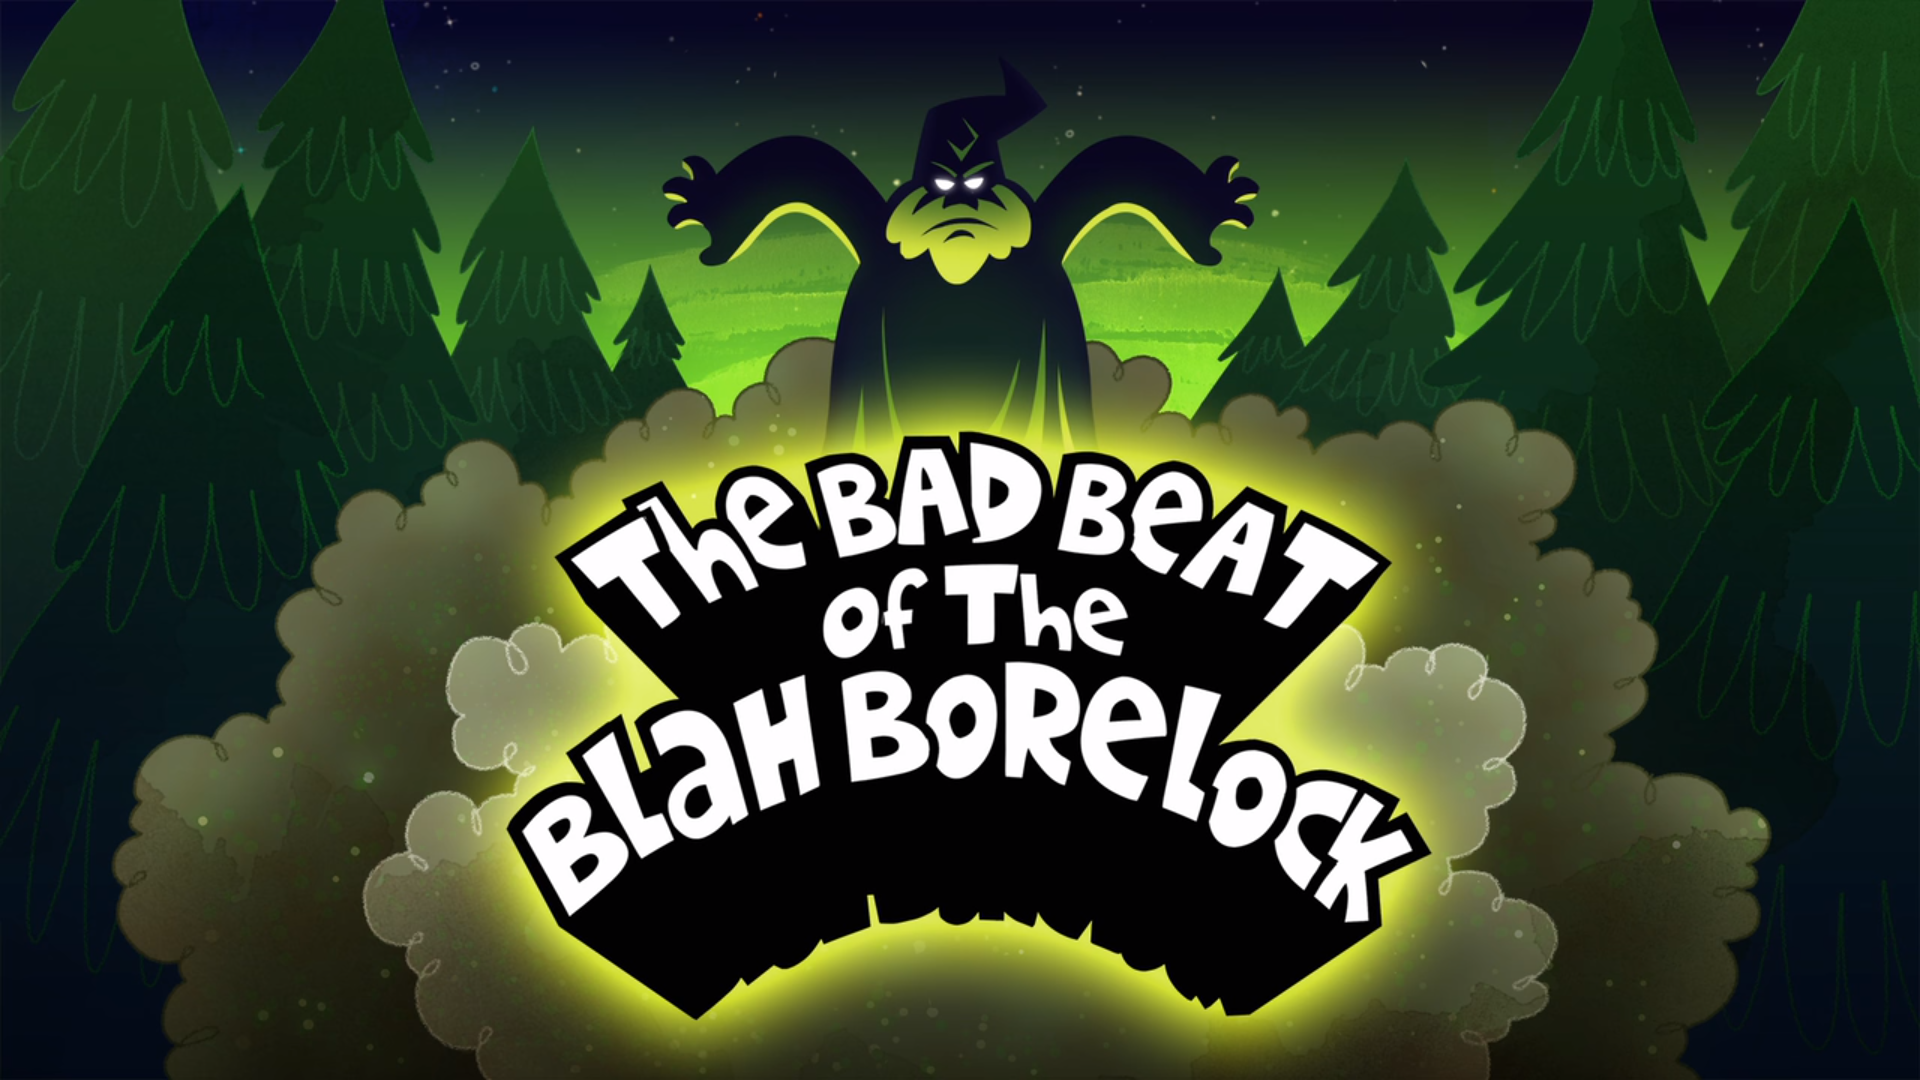 The Bad Beat of the Blah Borelock